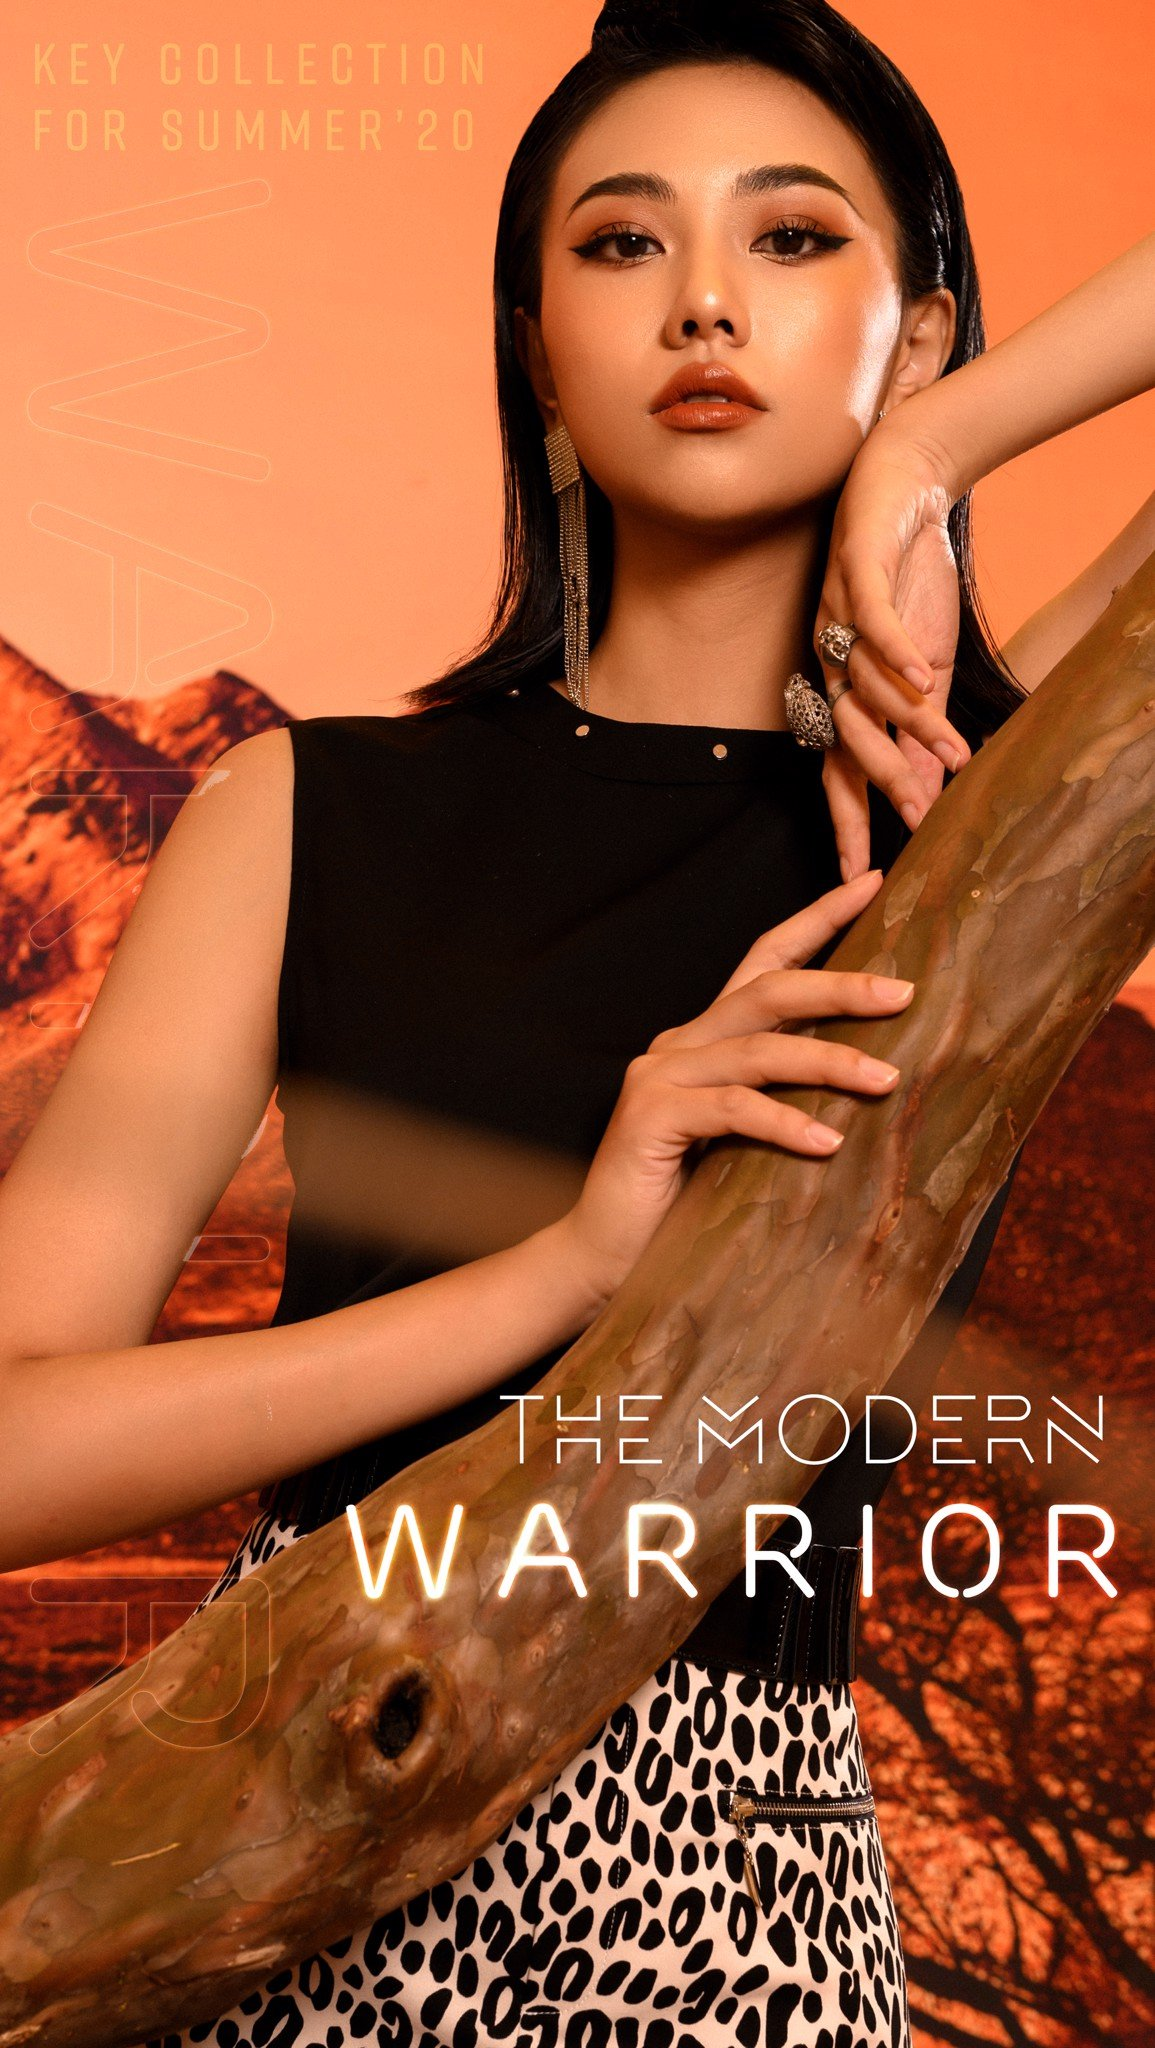 THE MODERN WARRIOR